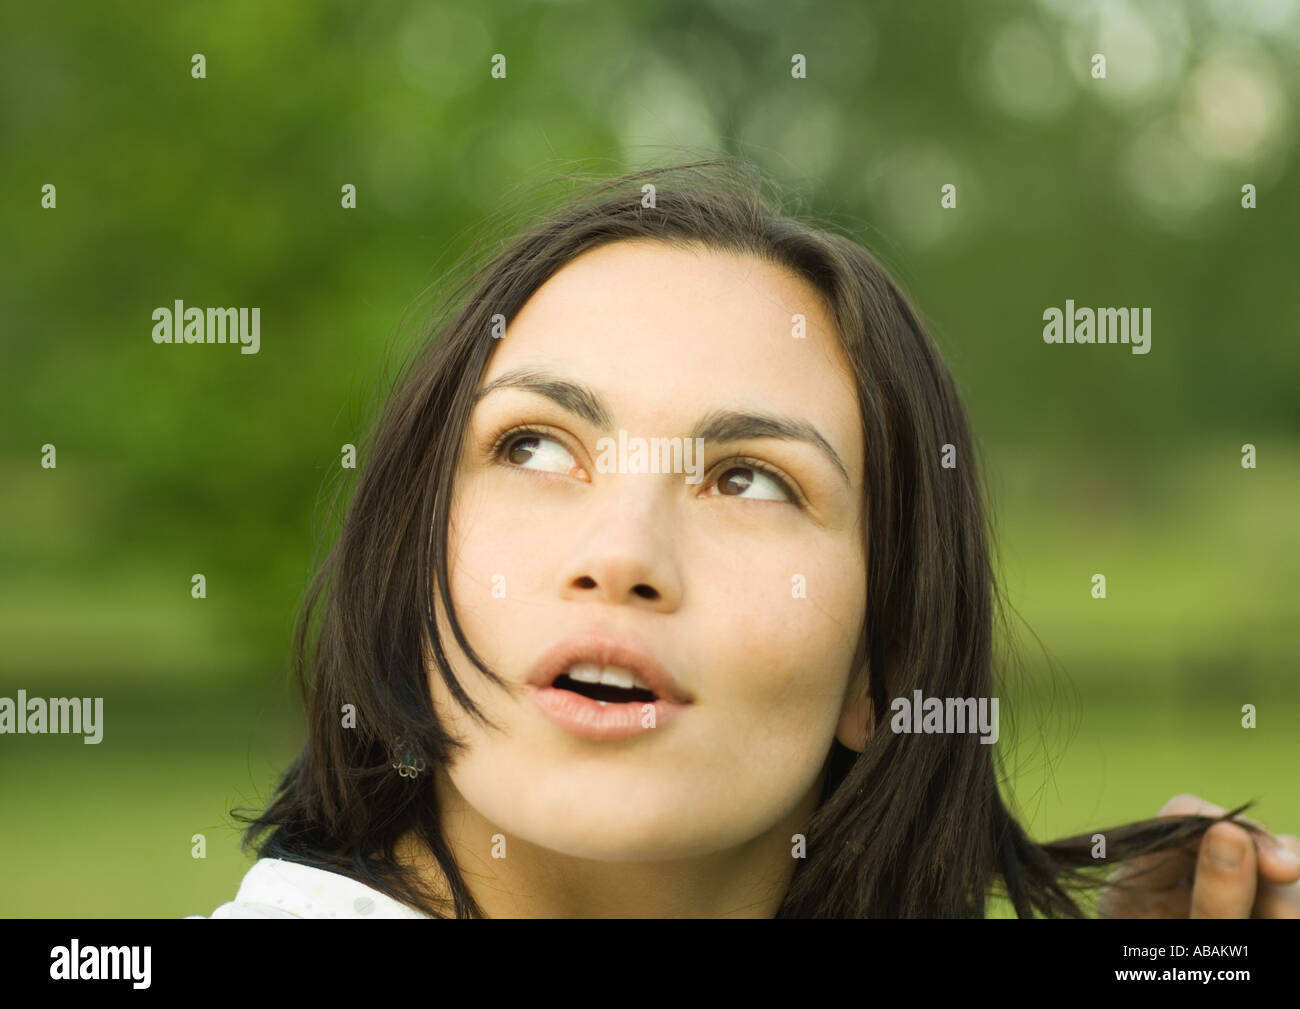 Woman looking up with mouth open - Stock Image